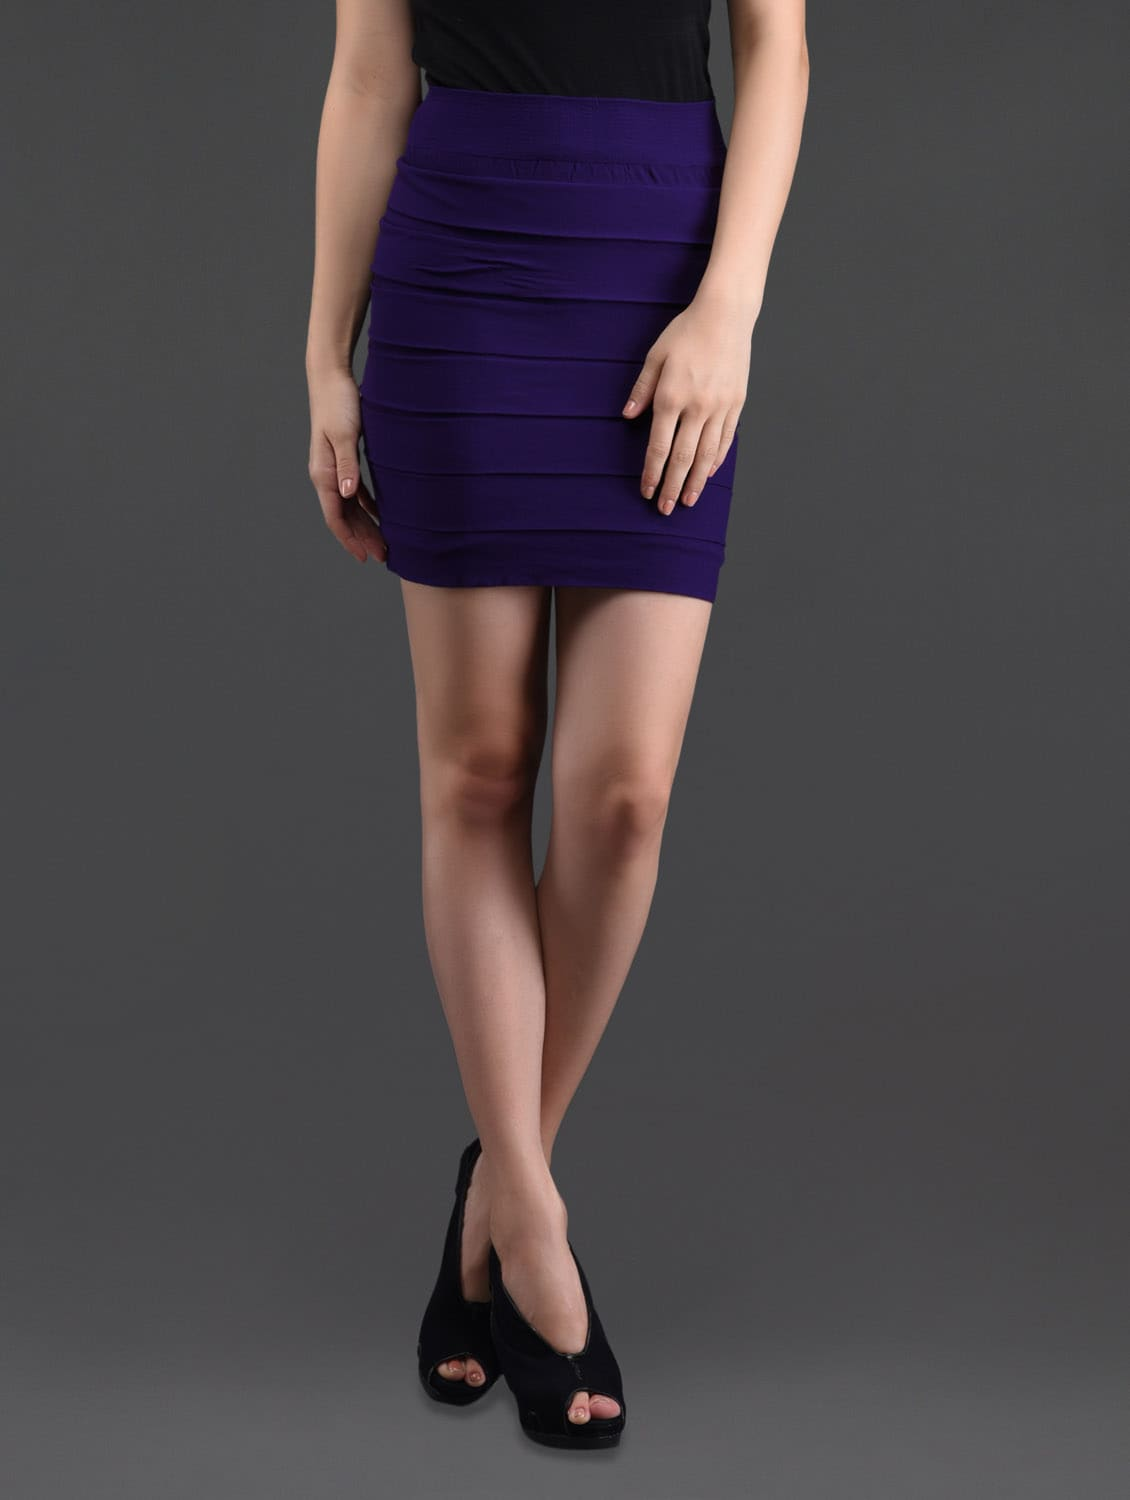 Purple Self Striped Pencil Skirt Cum Tube Top - N-Gal